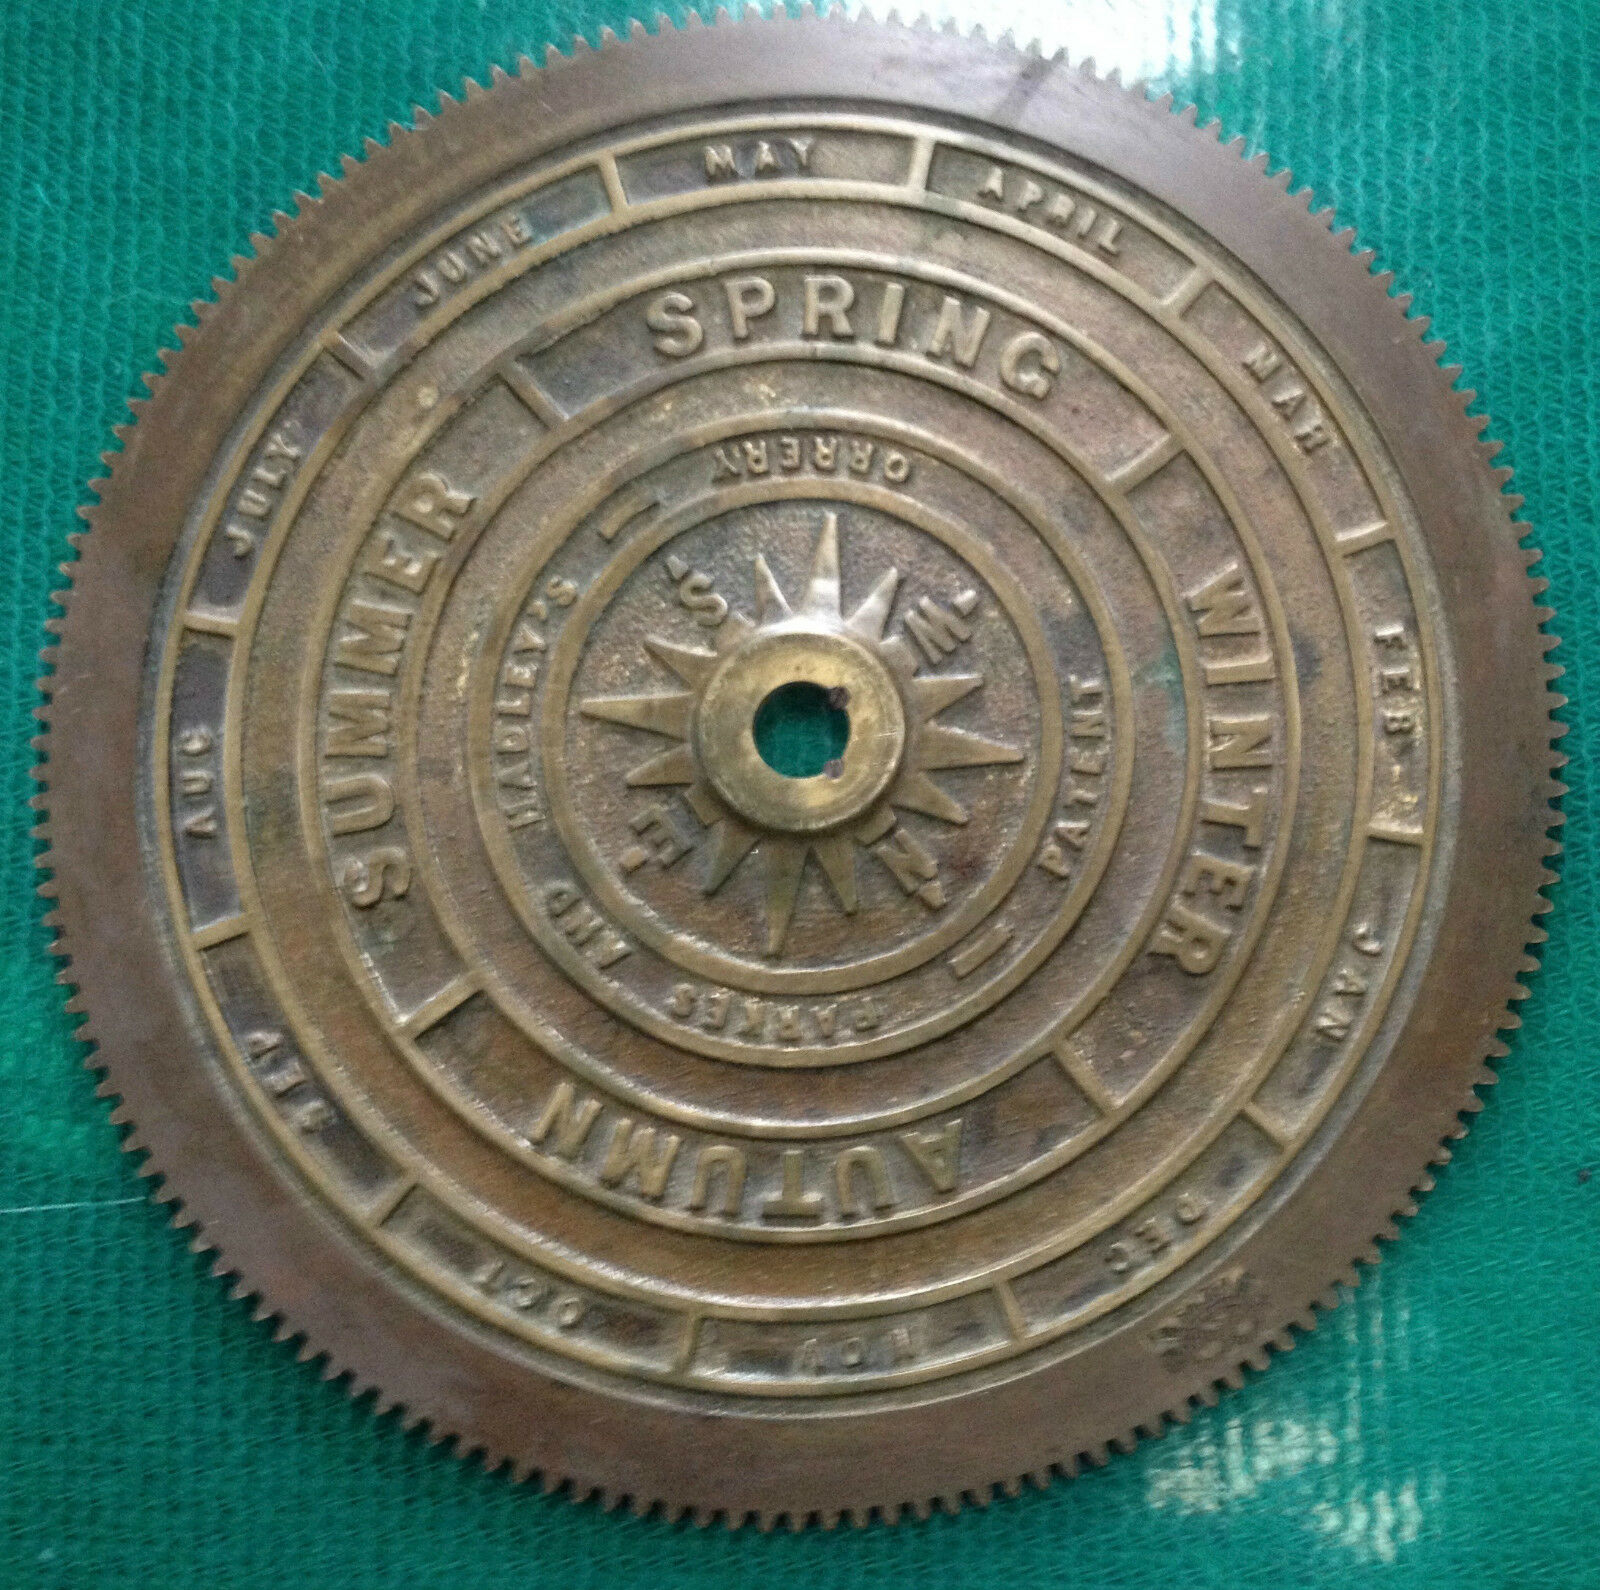 Brass Disc of Orrery by Salter, Parkes and Hadley's Patent